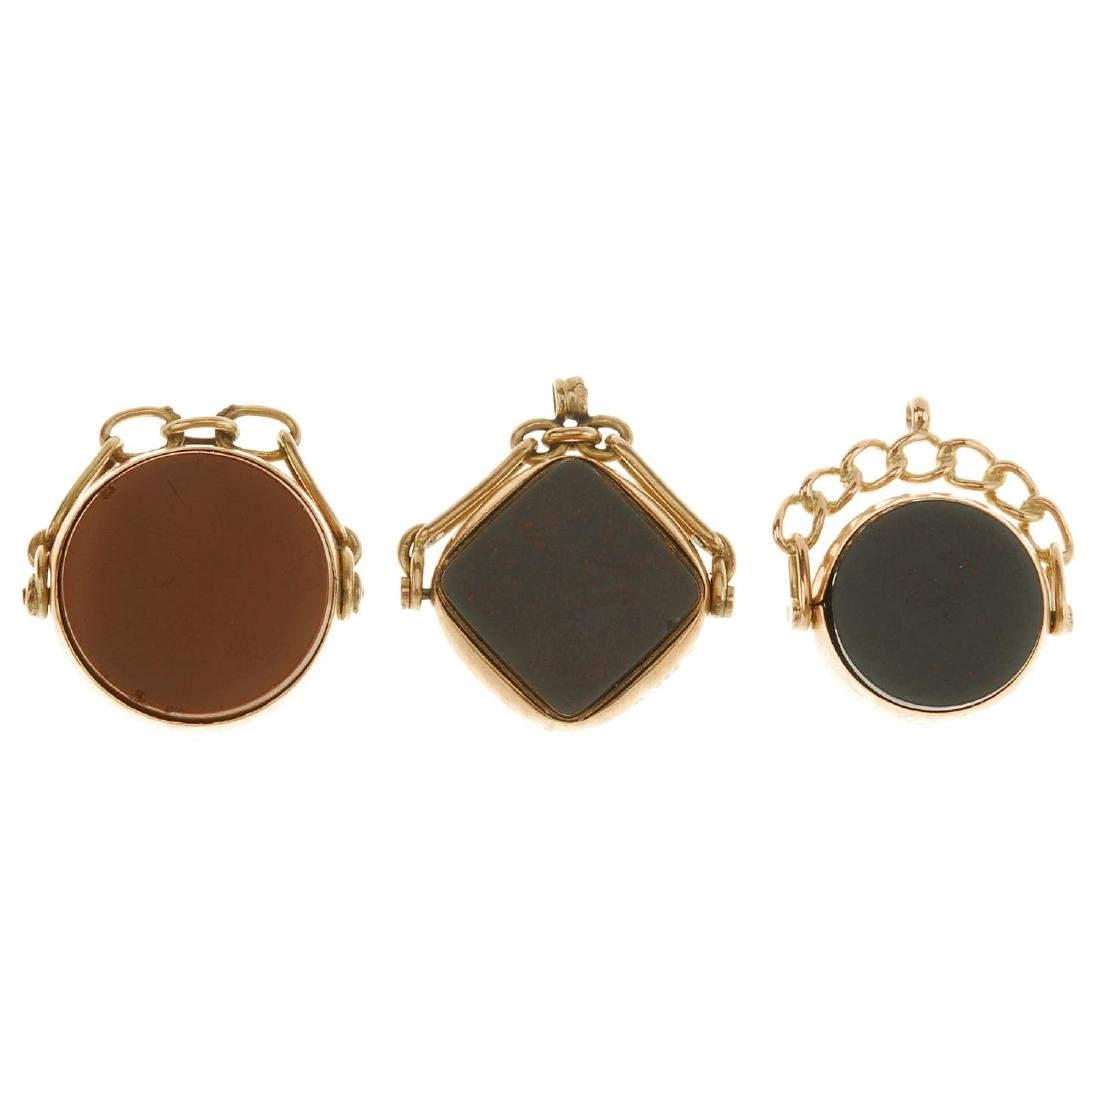 Three 9ct gold swivel fobs. To include one with